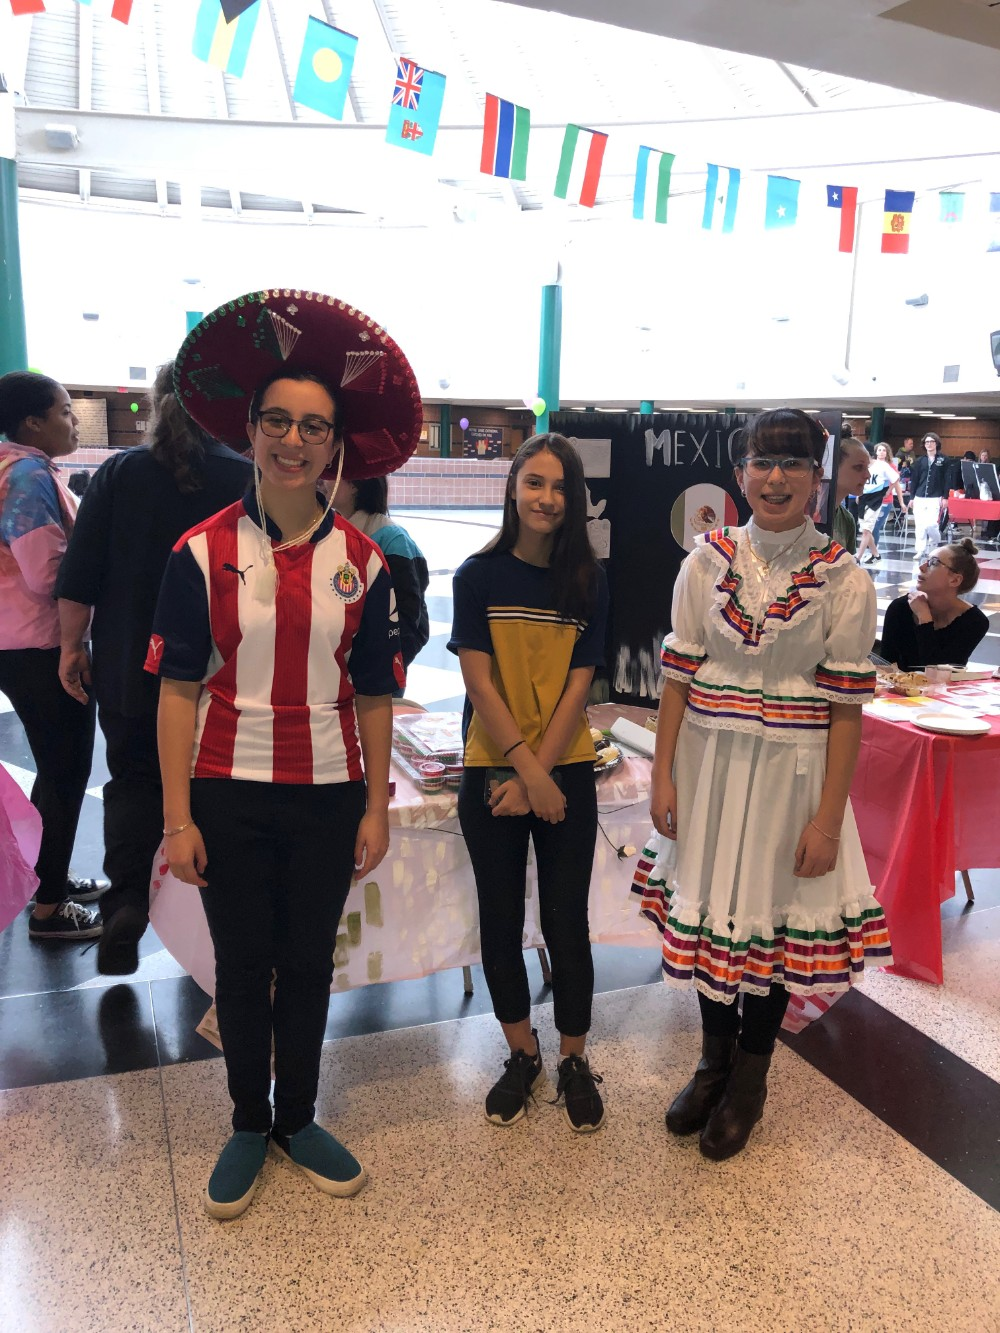 LOHS Culture Night shared diverse experiences to community